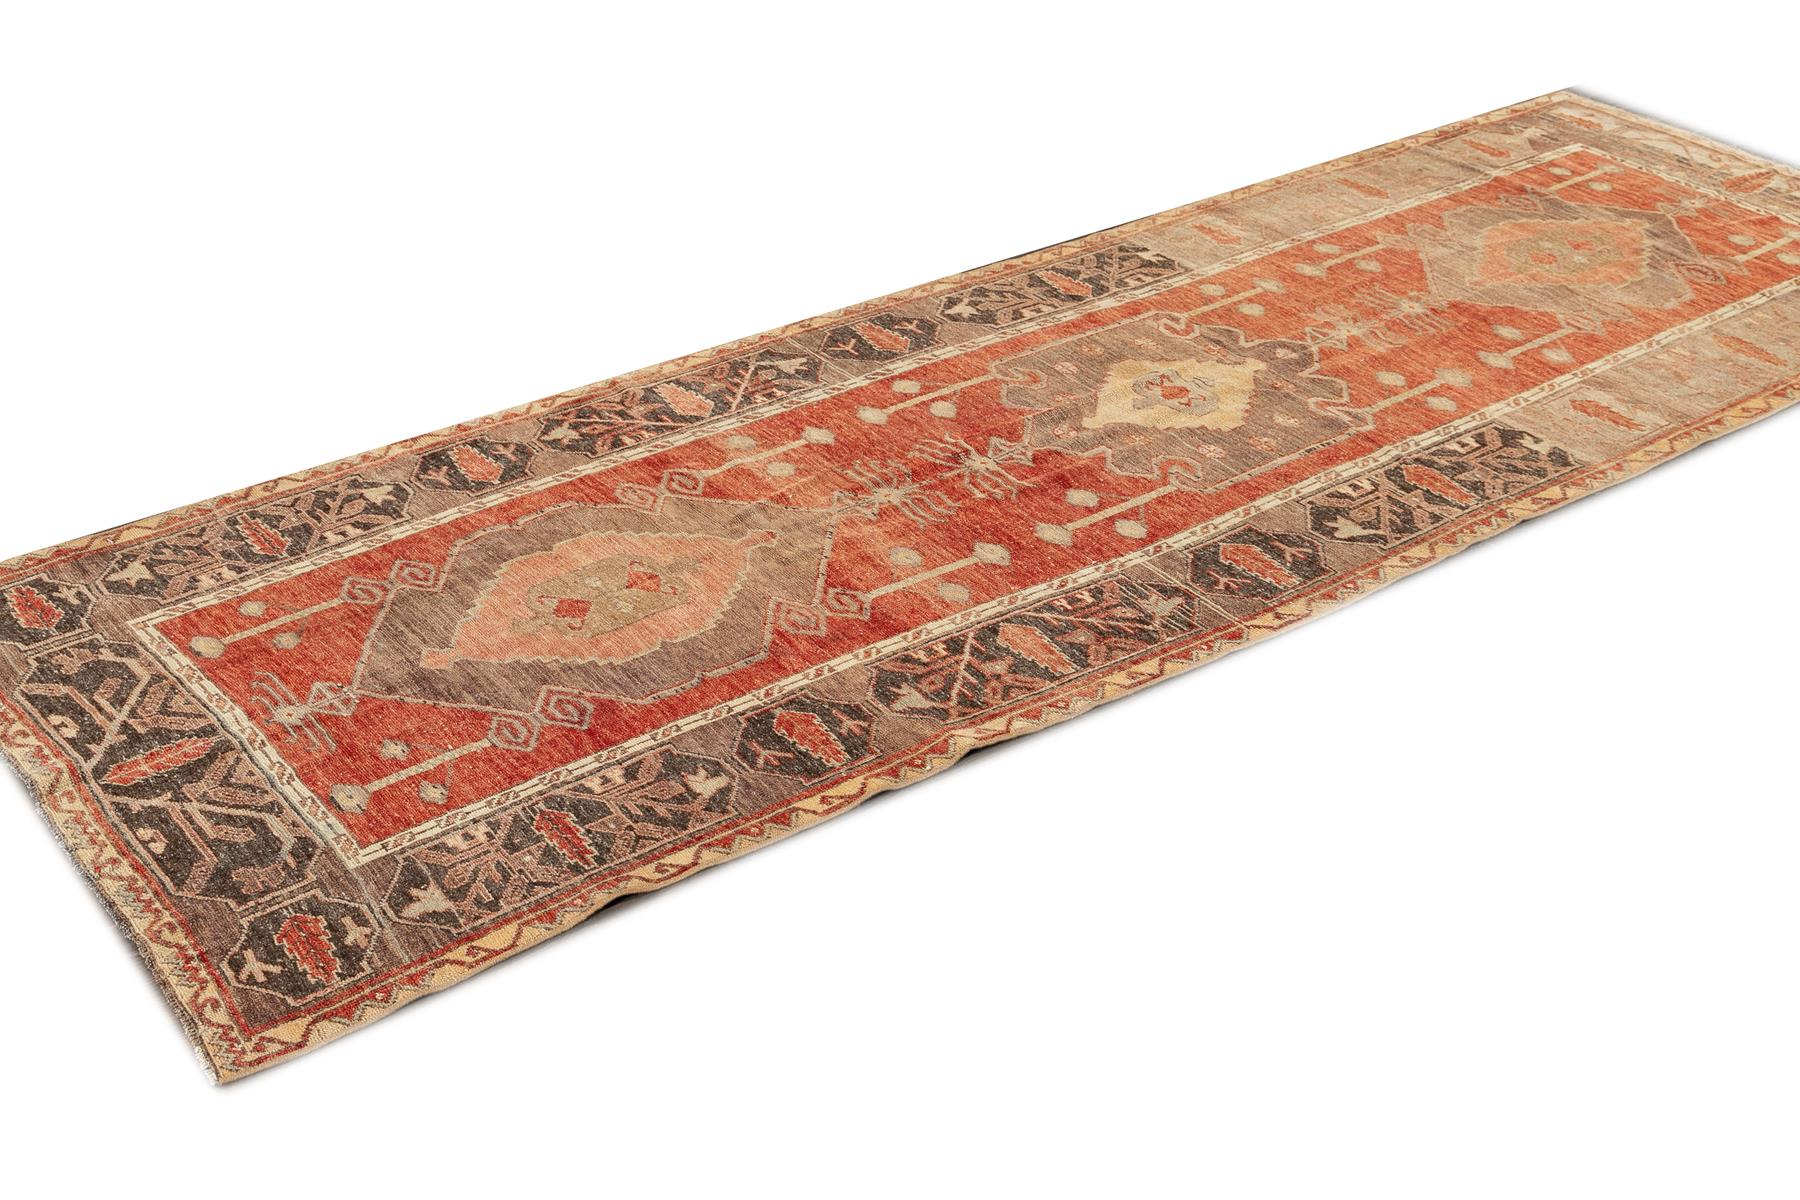 Vintage Turkish Anatolian Runner Rug, 4X10